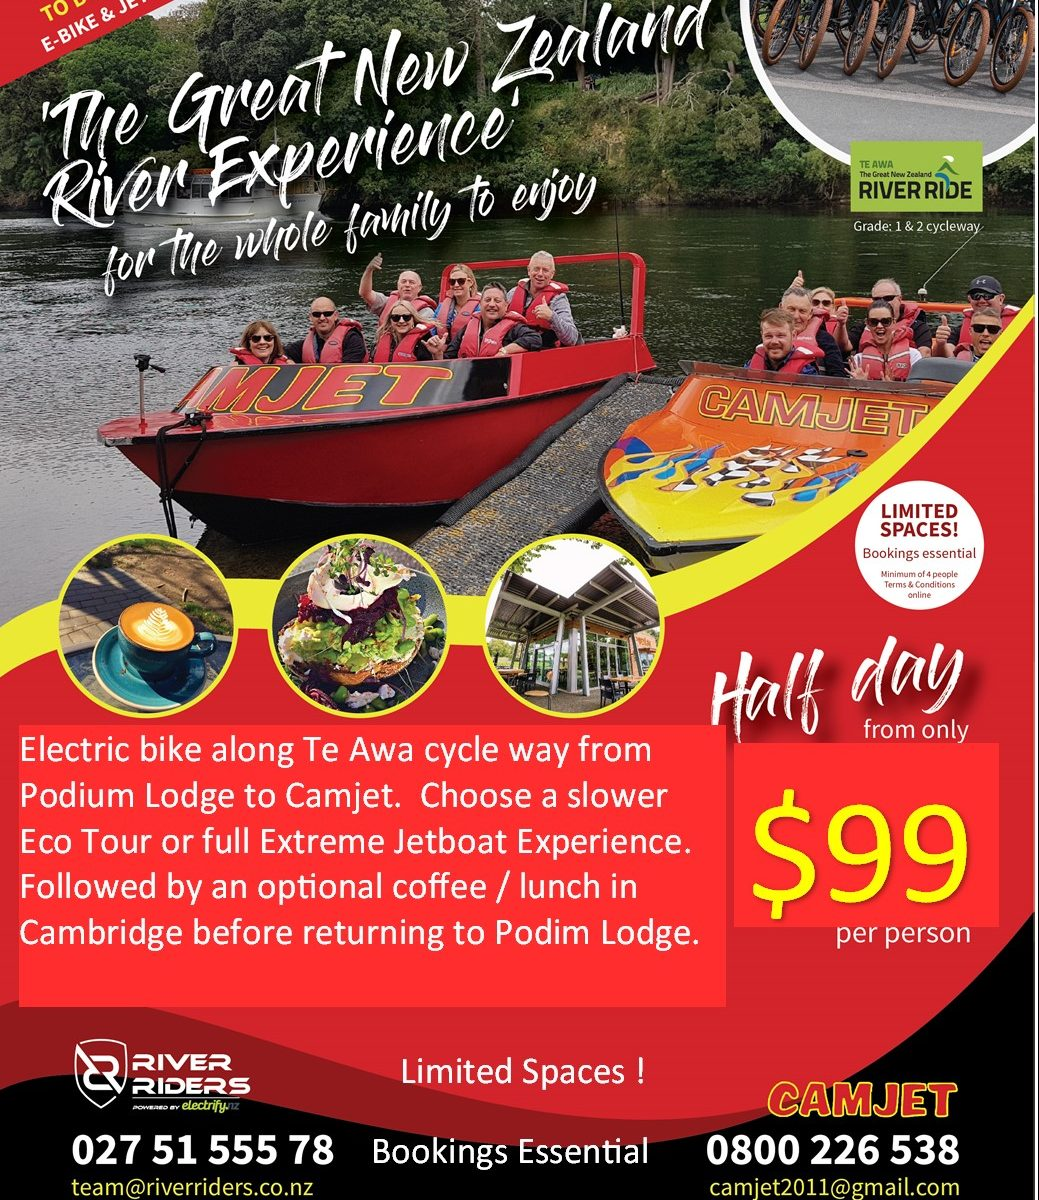 Things to do in camberdge 2 hour jet boat and 15 min e bike $99 per person